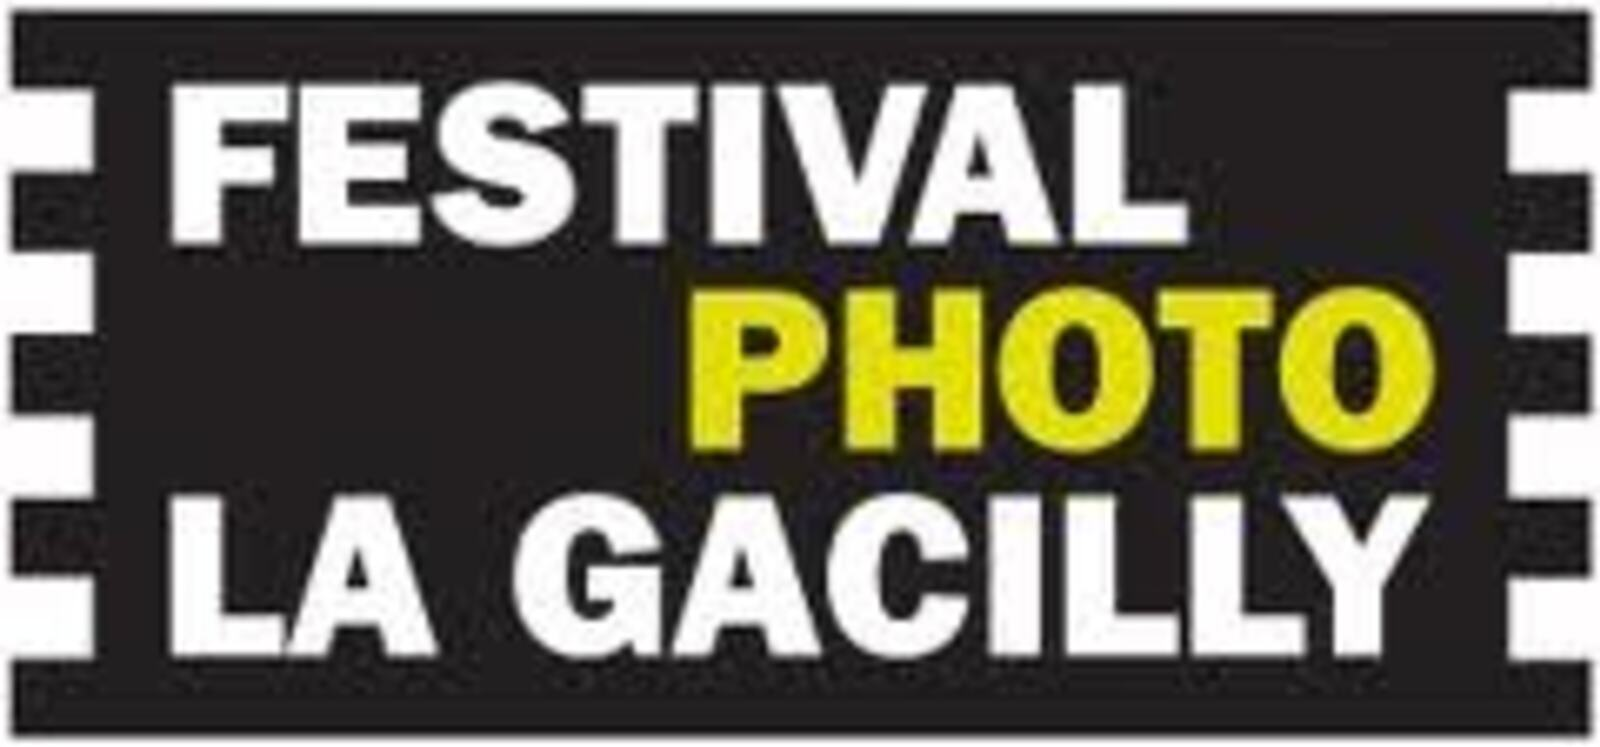 EXPOSITION PHOTO 2013 LA GACILLY 56  04/08/2013